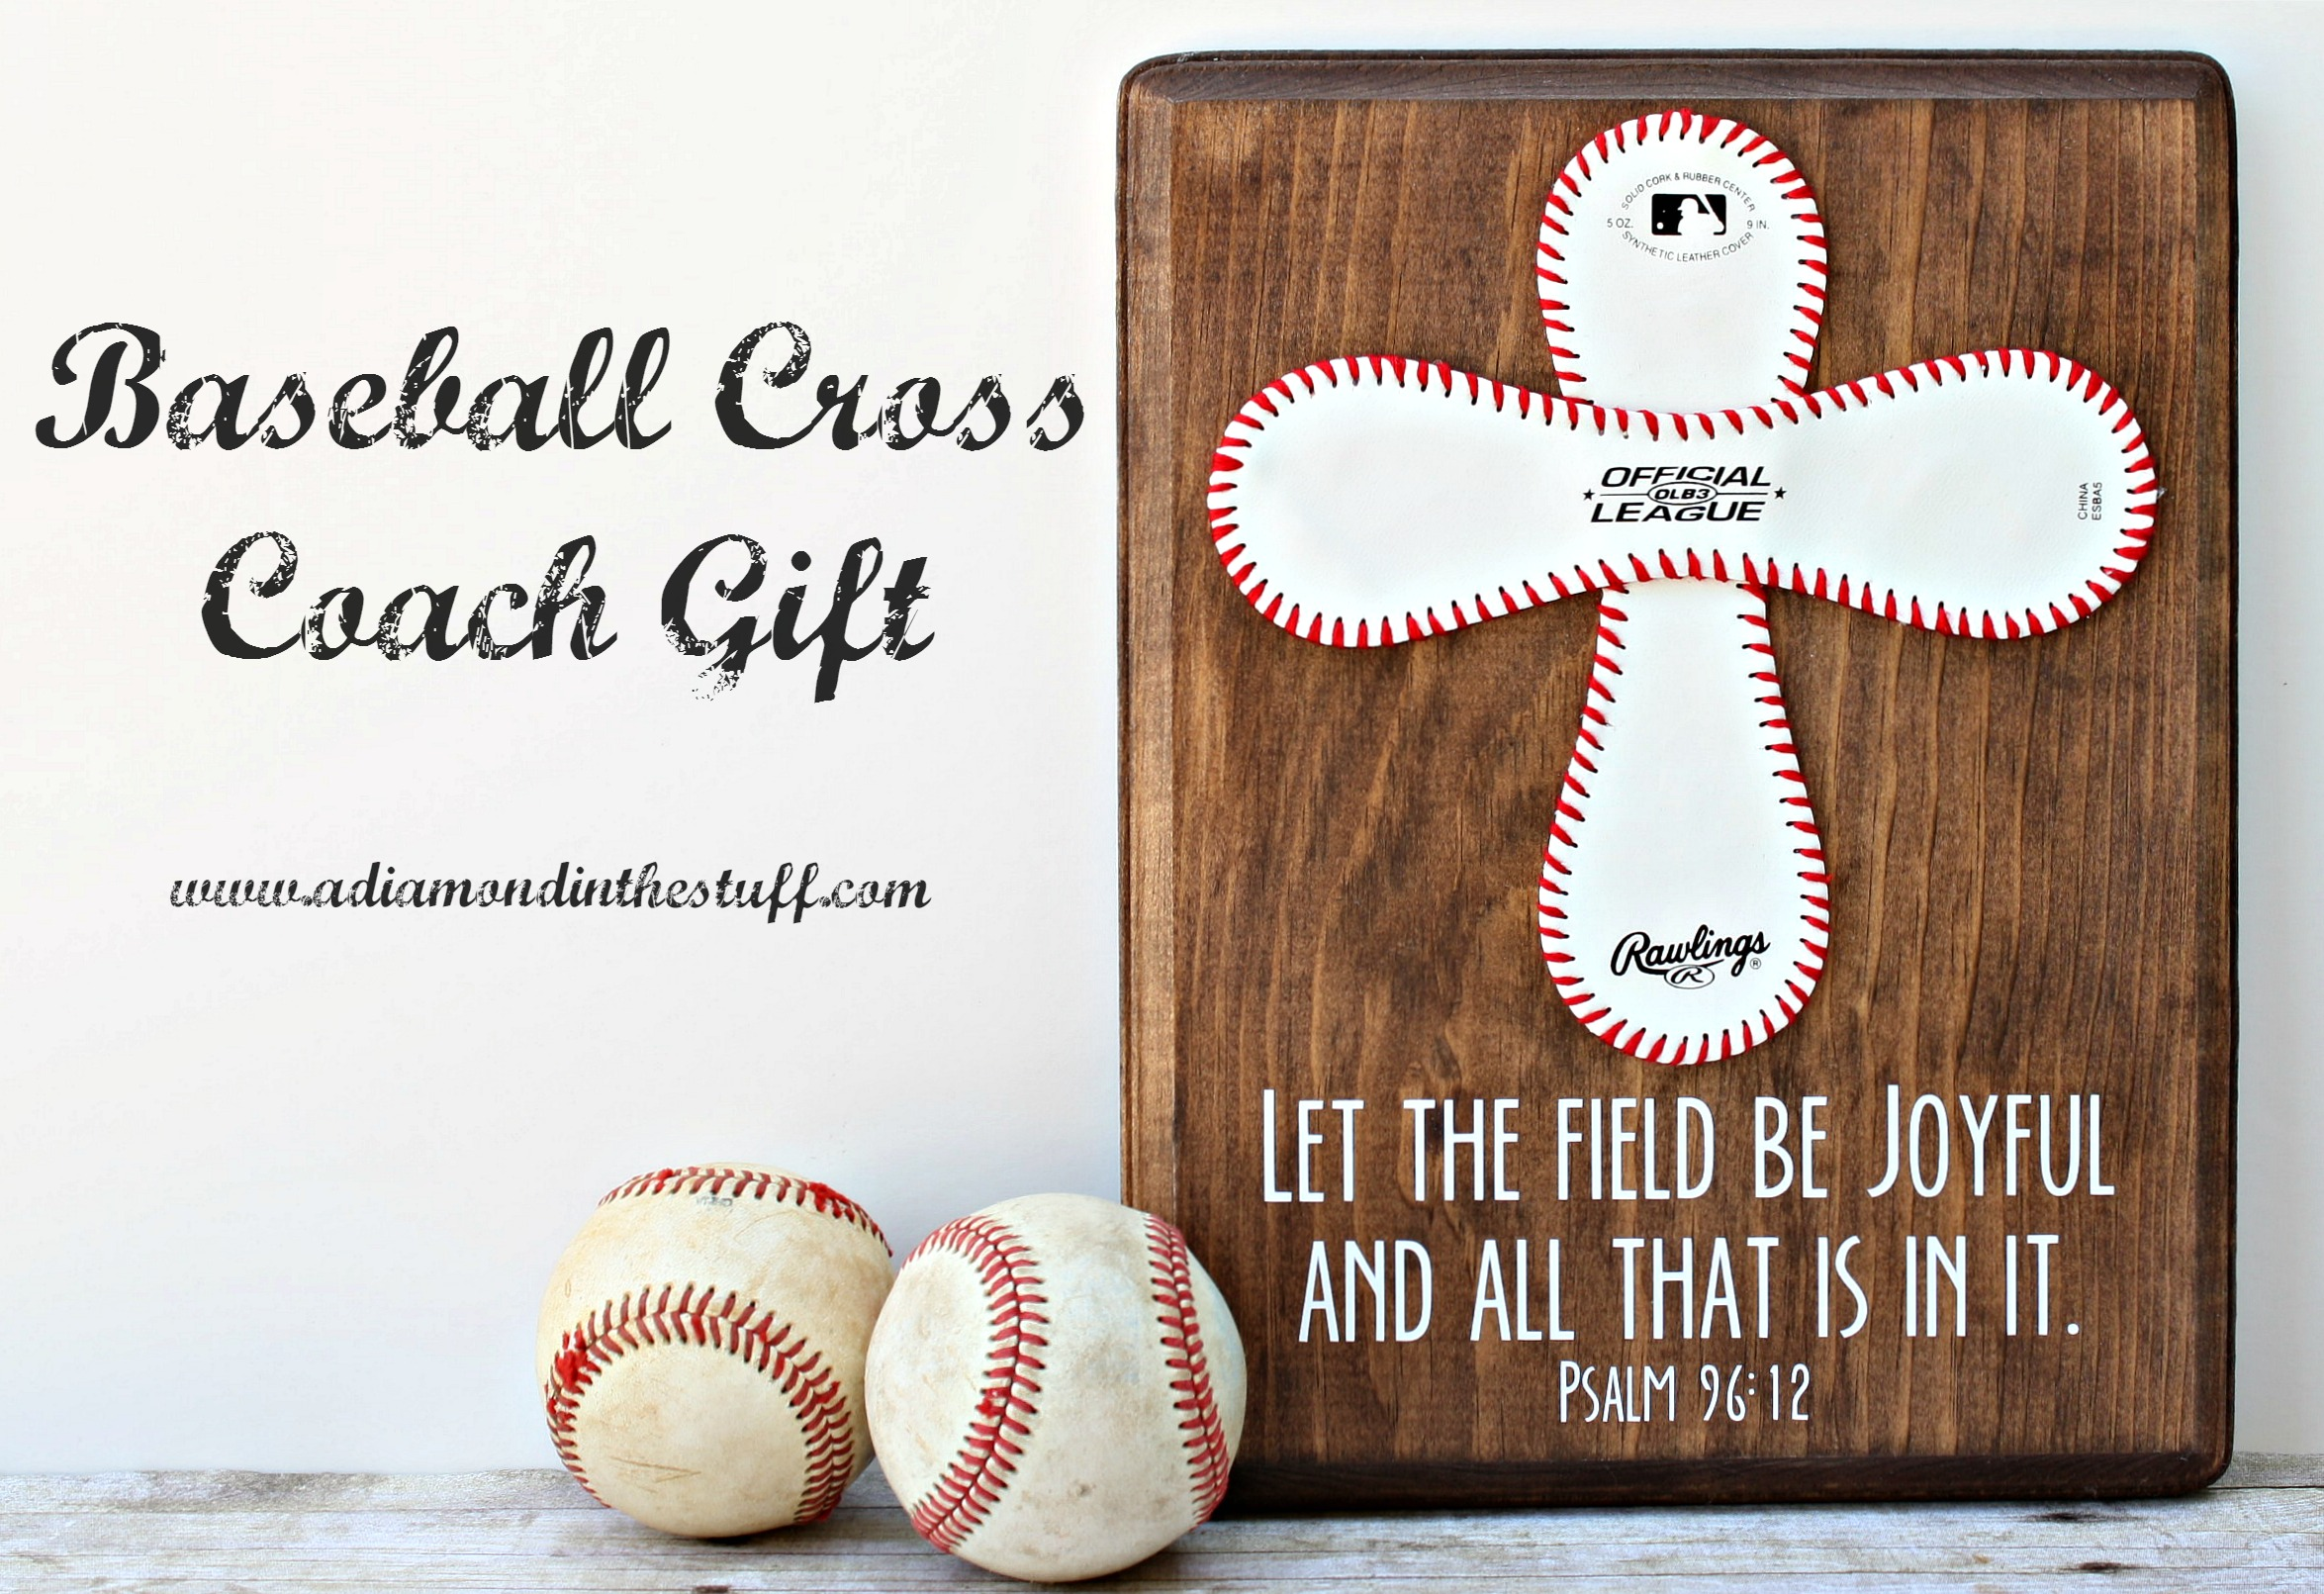 Baseball Cross Coach Gift